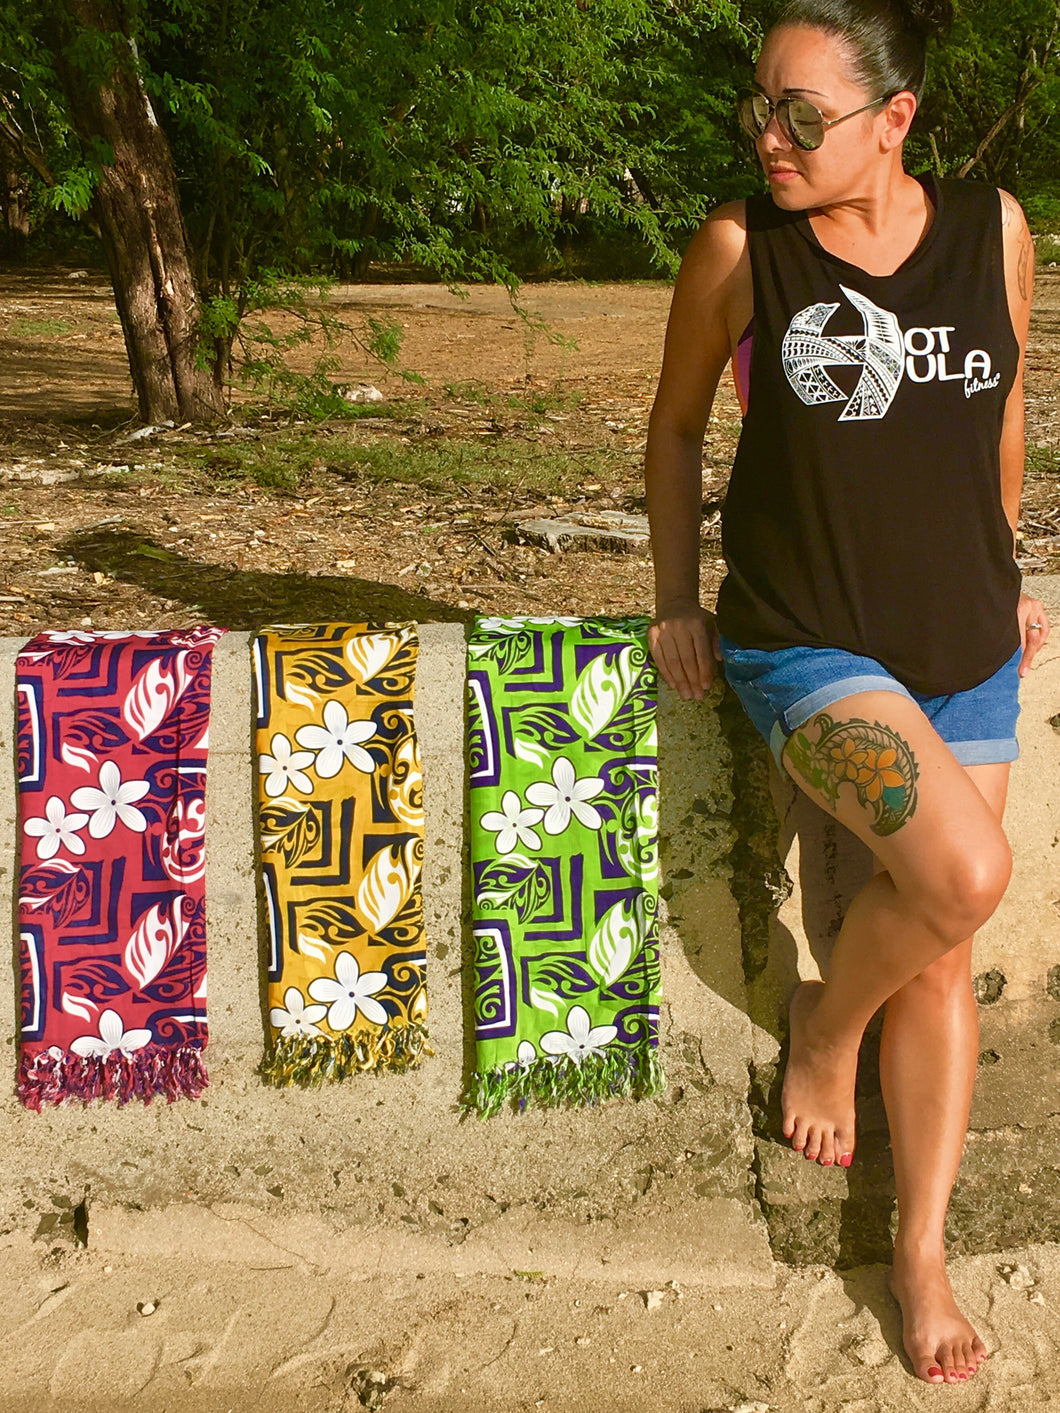 HOT HULA fitness® Lava Lavas - Plumeria Tribal Prints